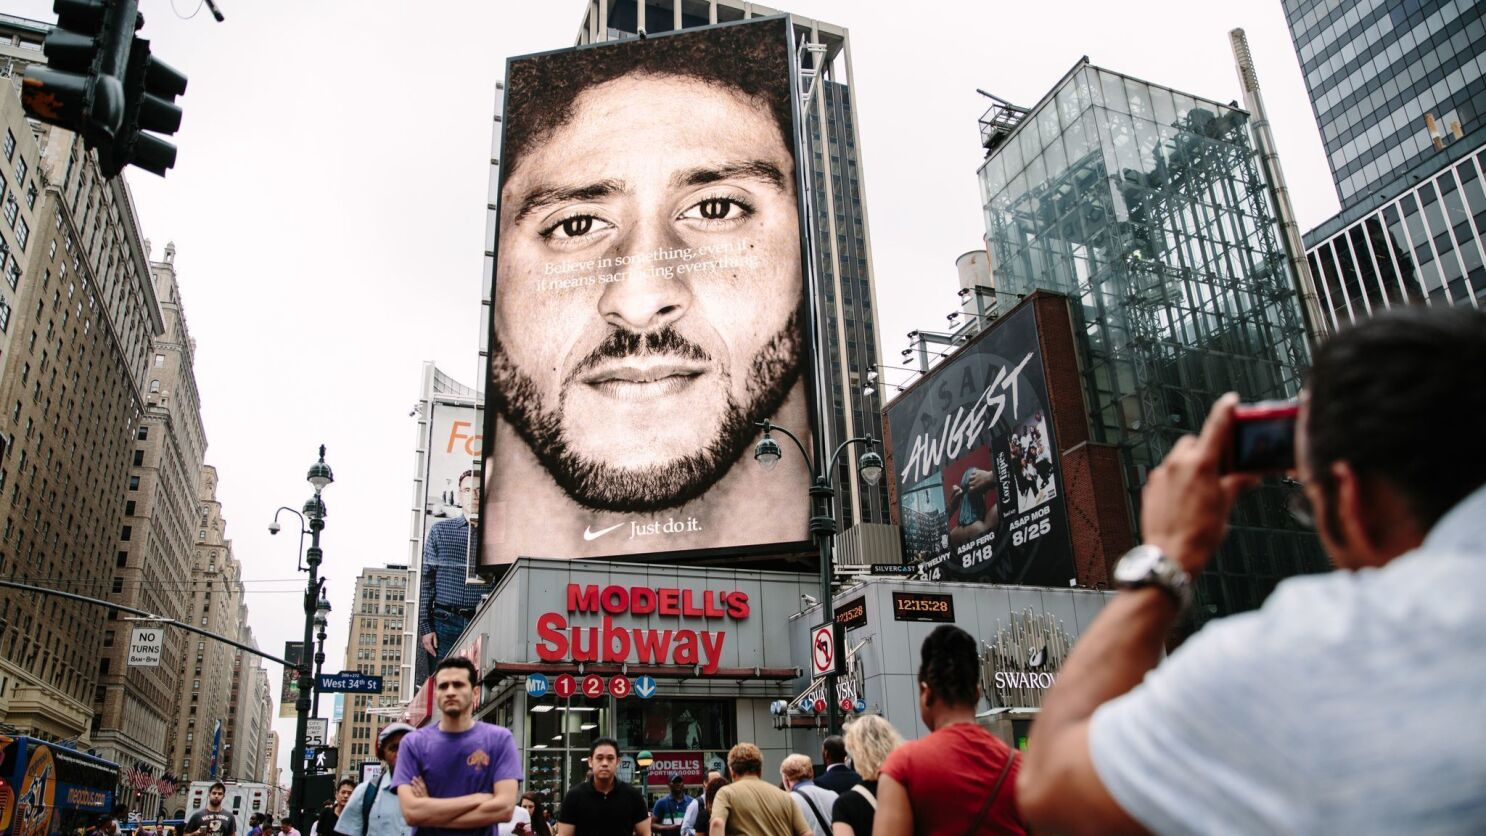 Some People Are Happy With Nike S Colin Kaepernick Ads Others Not So Much Los Angeles Times